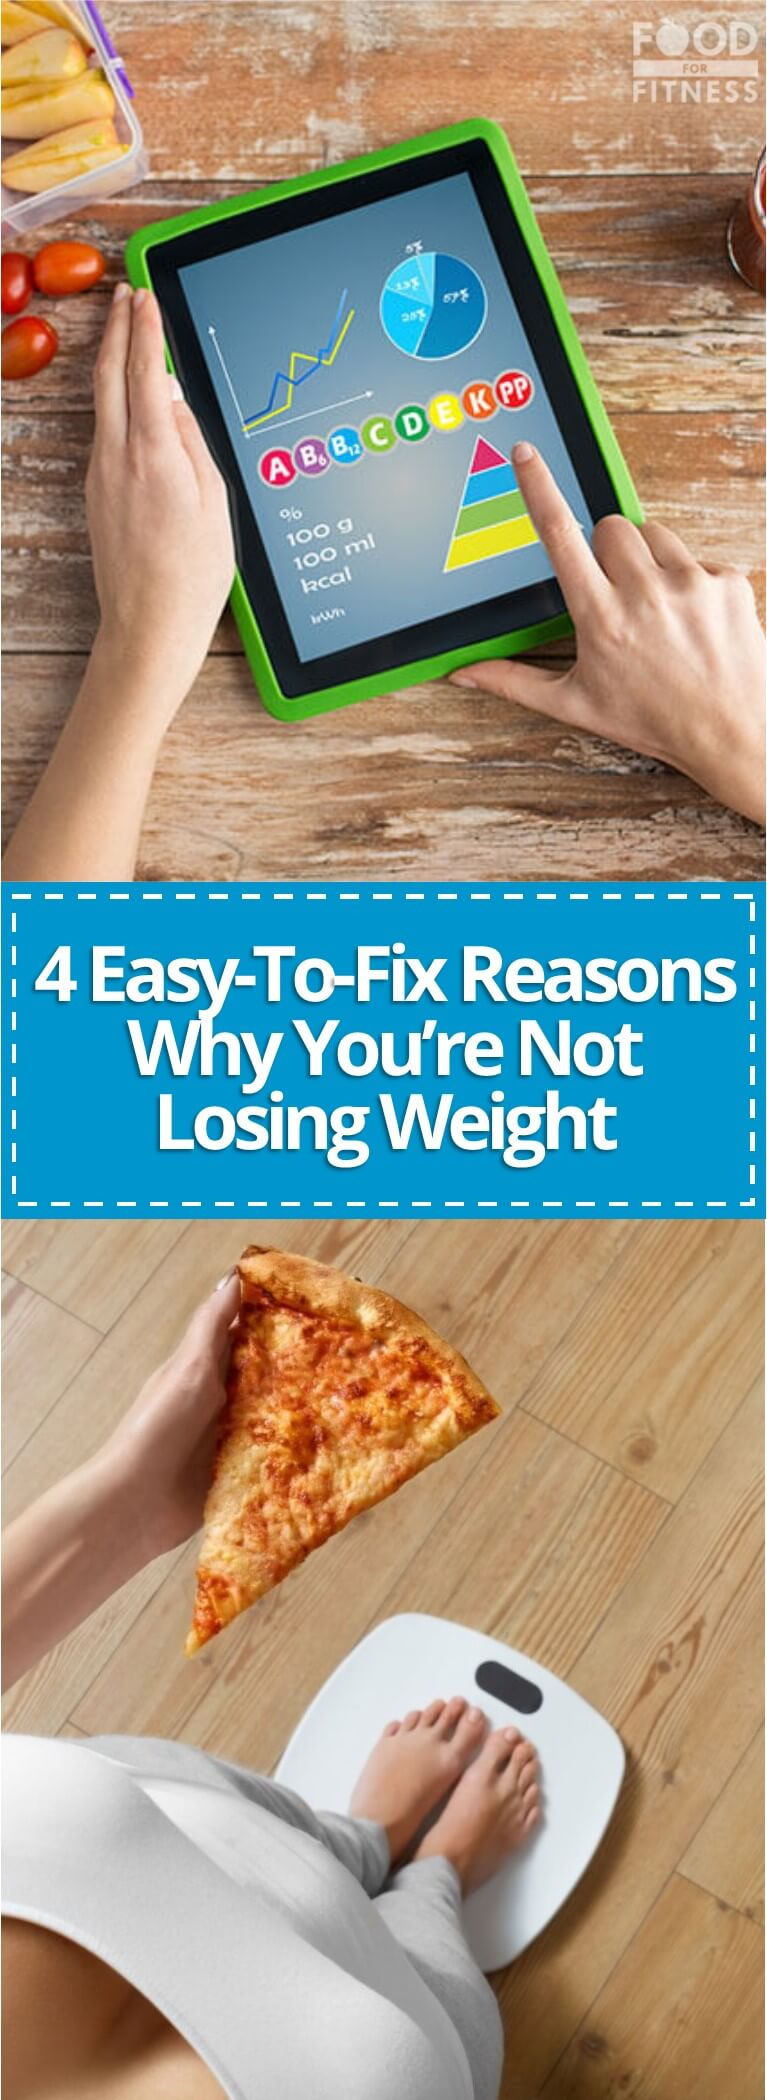 Discover 4 easy-to-fix reasons why you're not losing weight.